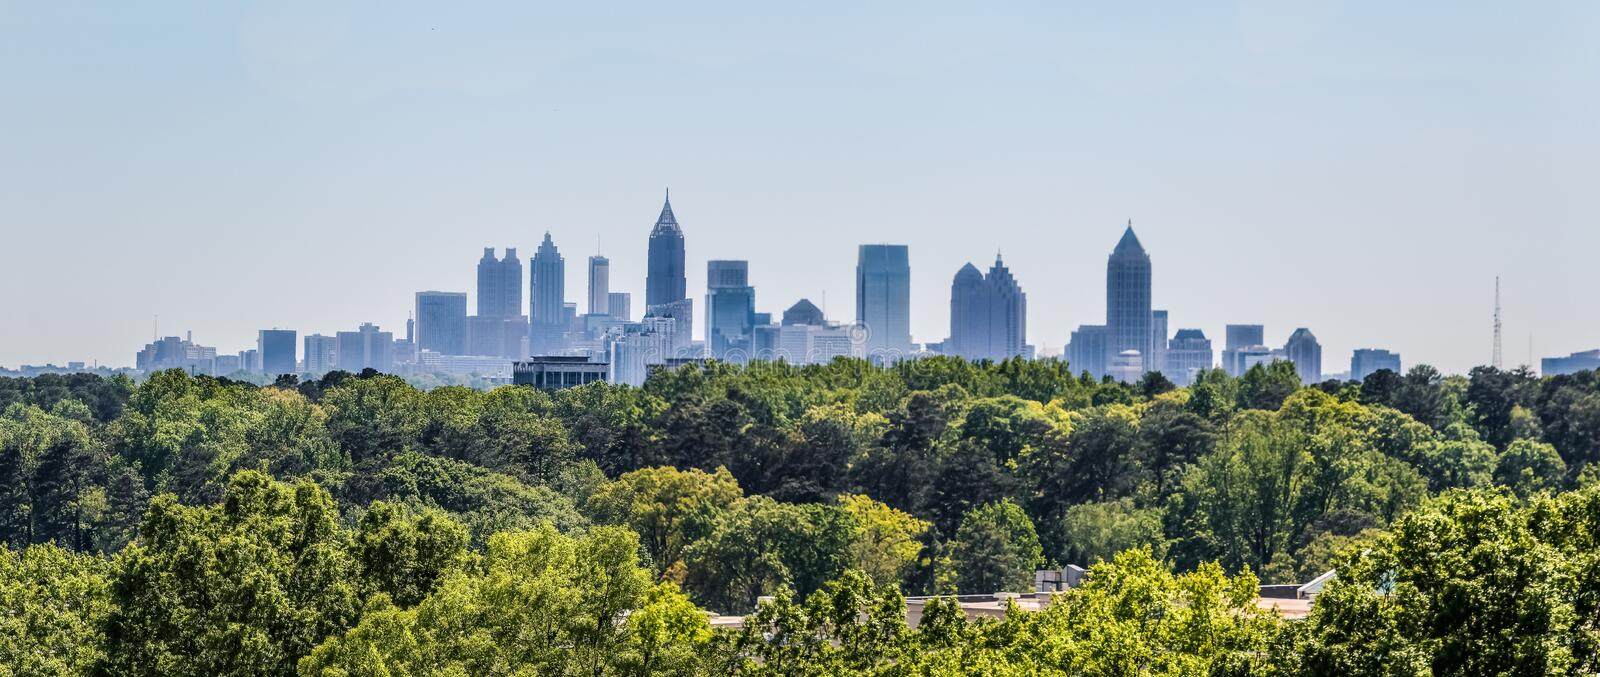 A view of the downtown Atlanta skyline from Buckhead. Downtown Atlanta Skyline showing several prominent buildings and hotels under a blue sky as seen from royalty free stock images